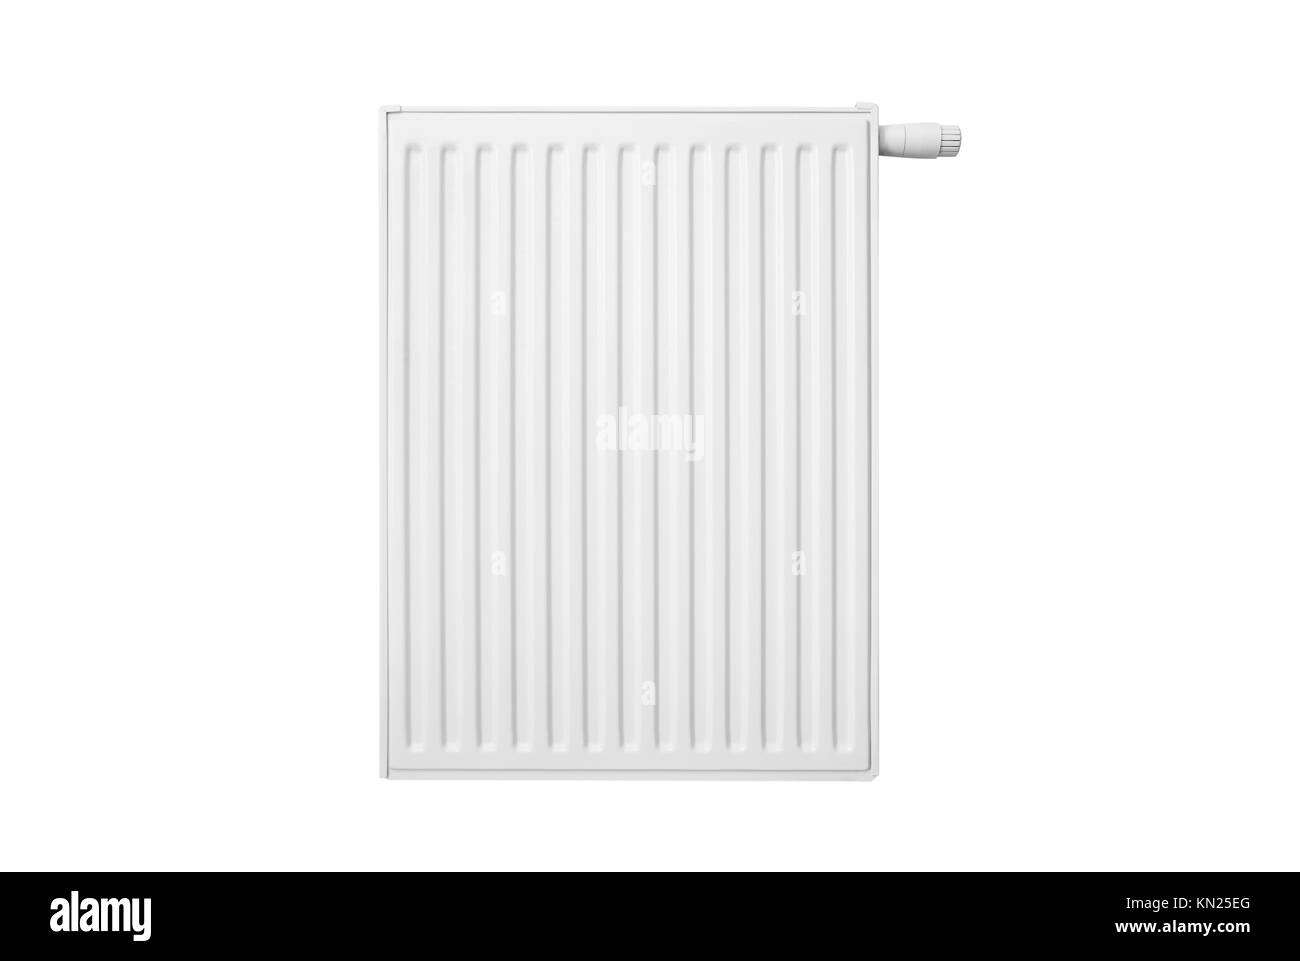 Radiator isolated on white background. radiator white heater central metal front isolated water concept - Stock Image